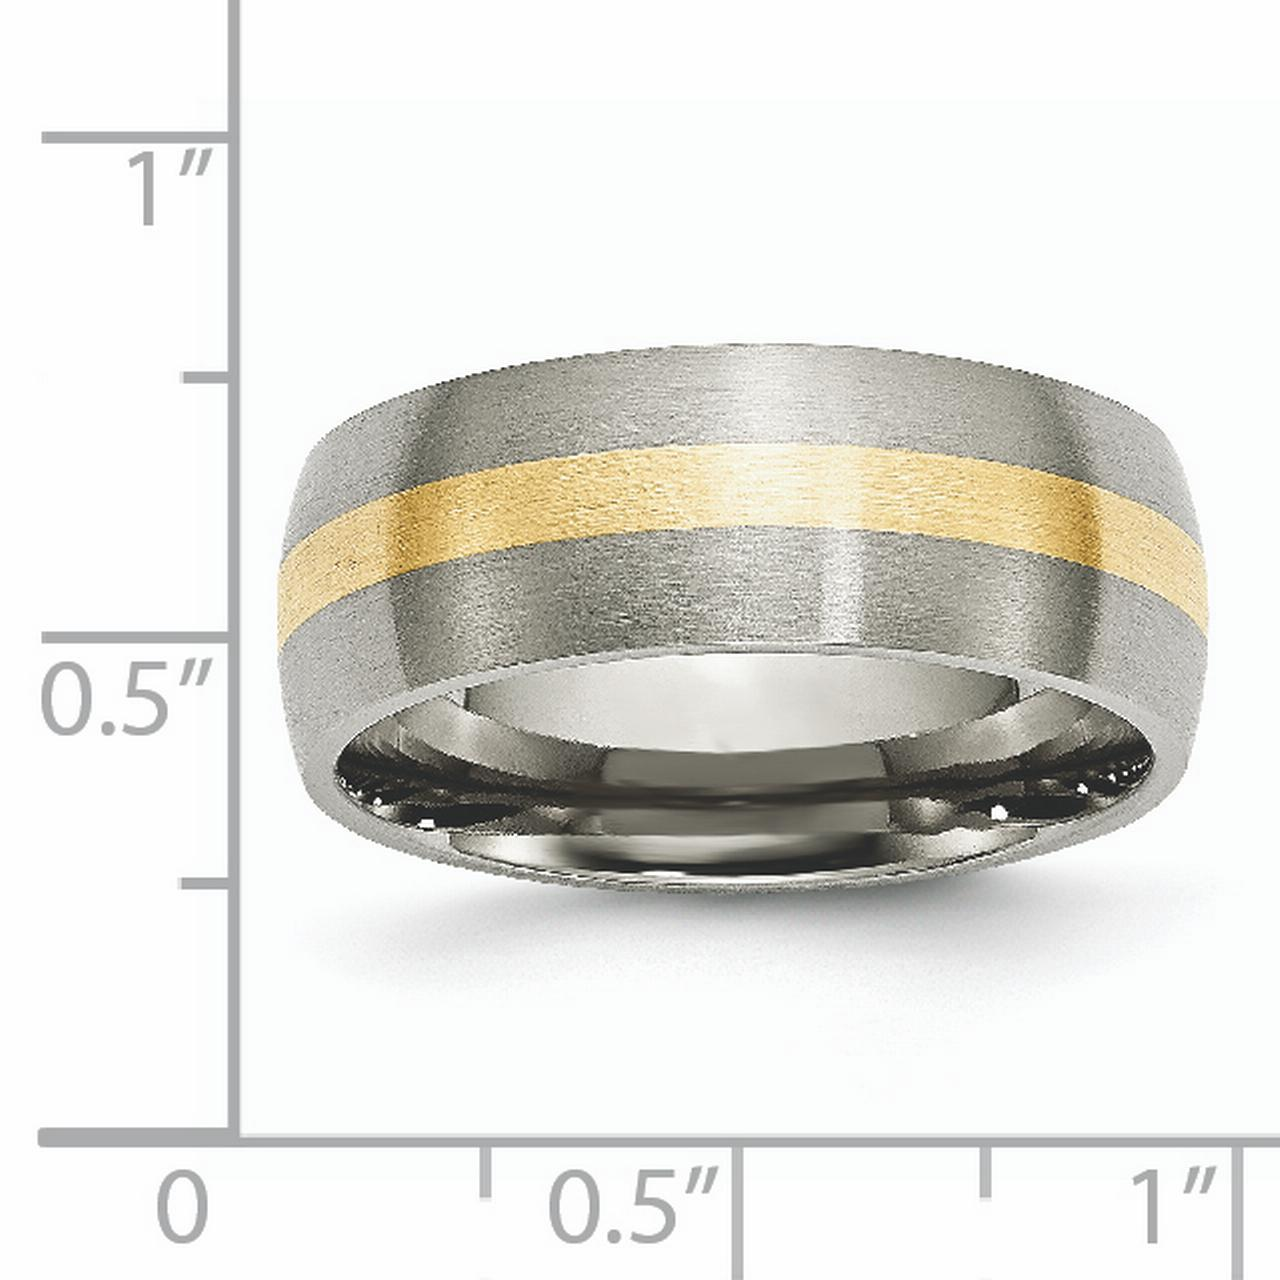 Titanium 14k Yellow Inlay 8mm Brushed Wedding Ring Band Size 8.50 Precious Metal Fine Jewelry Gifts For Women For Her - image 5 de 6